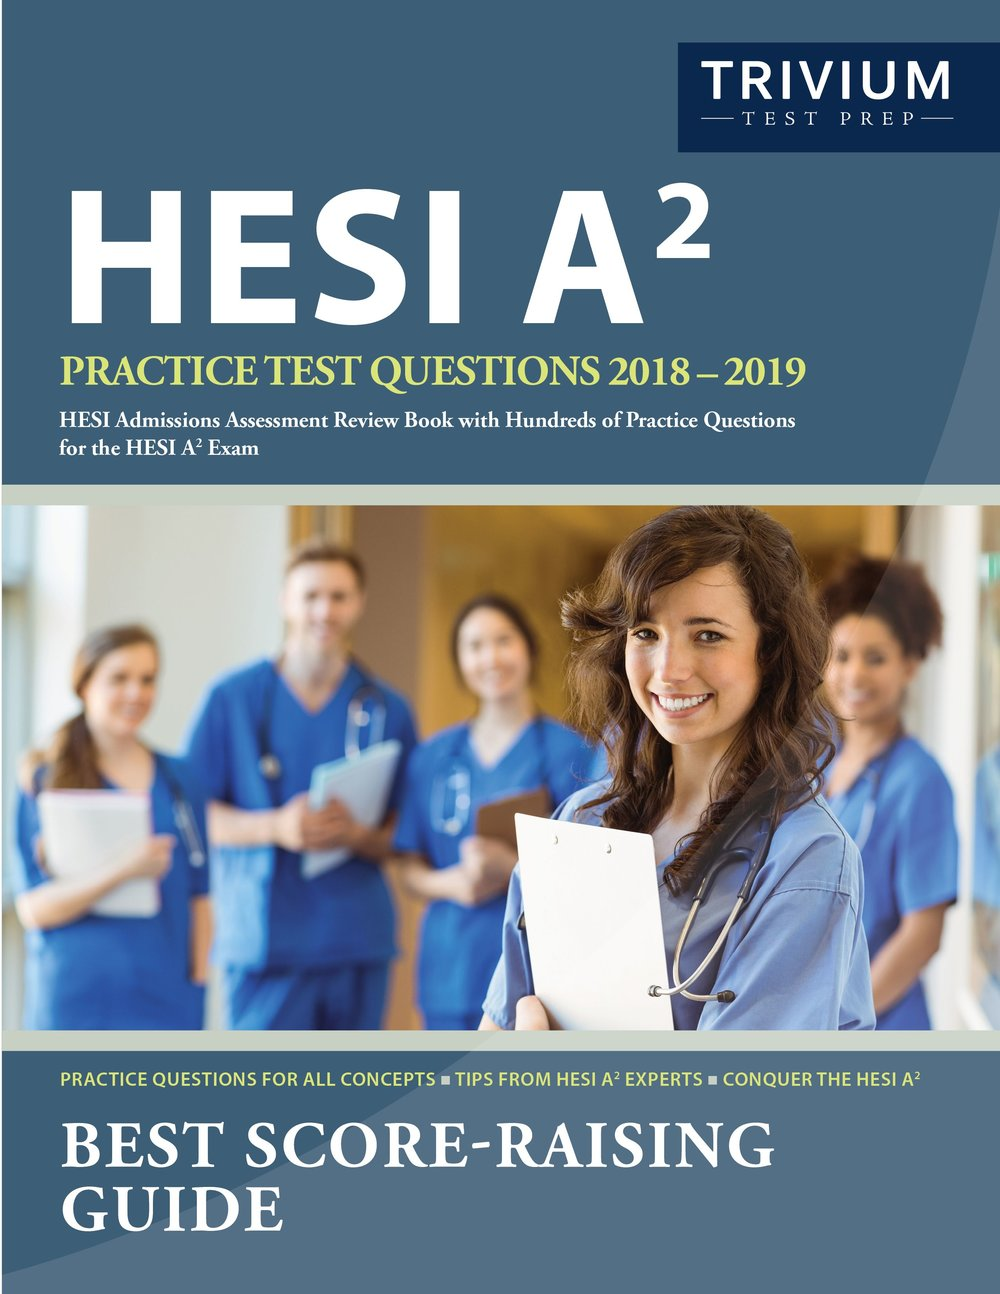 HESI A2 Test Prep Questions